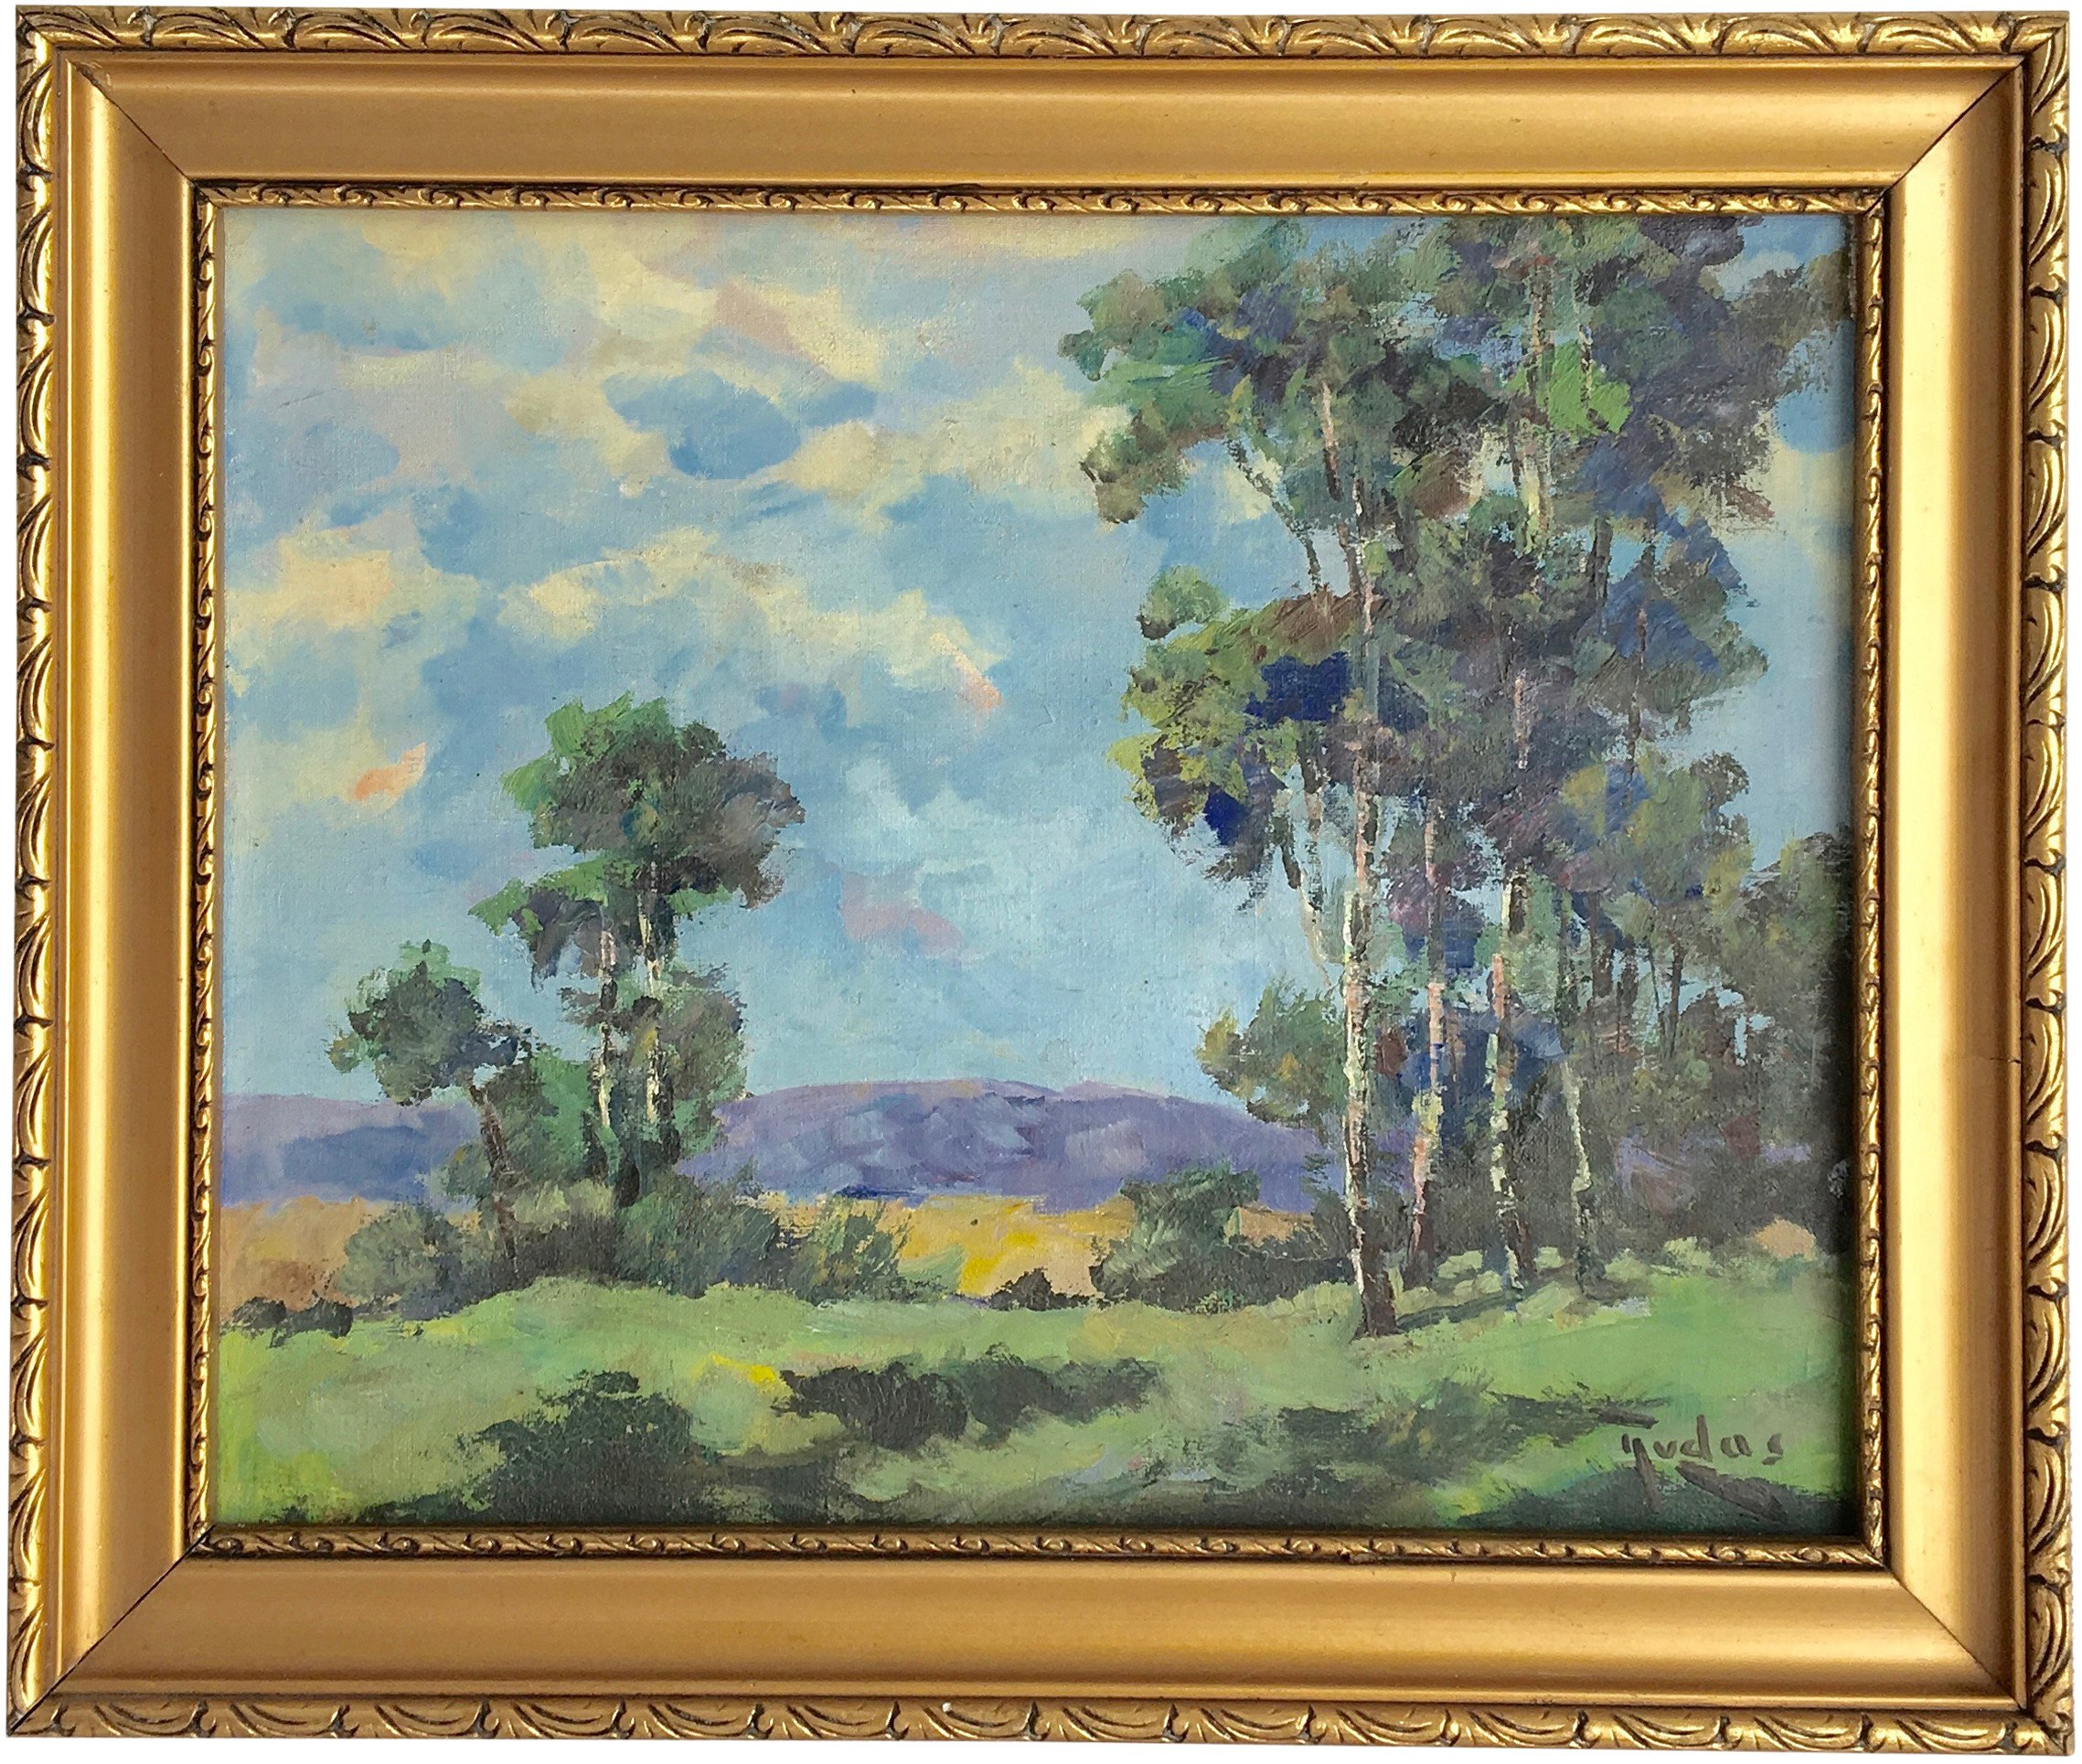 Oil Painting of the Landscape, 1960s